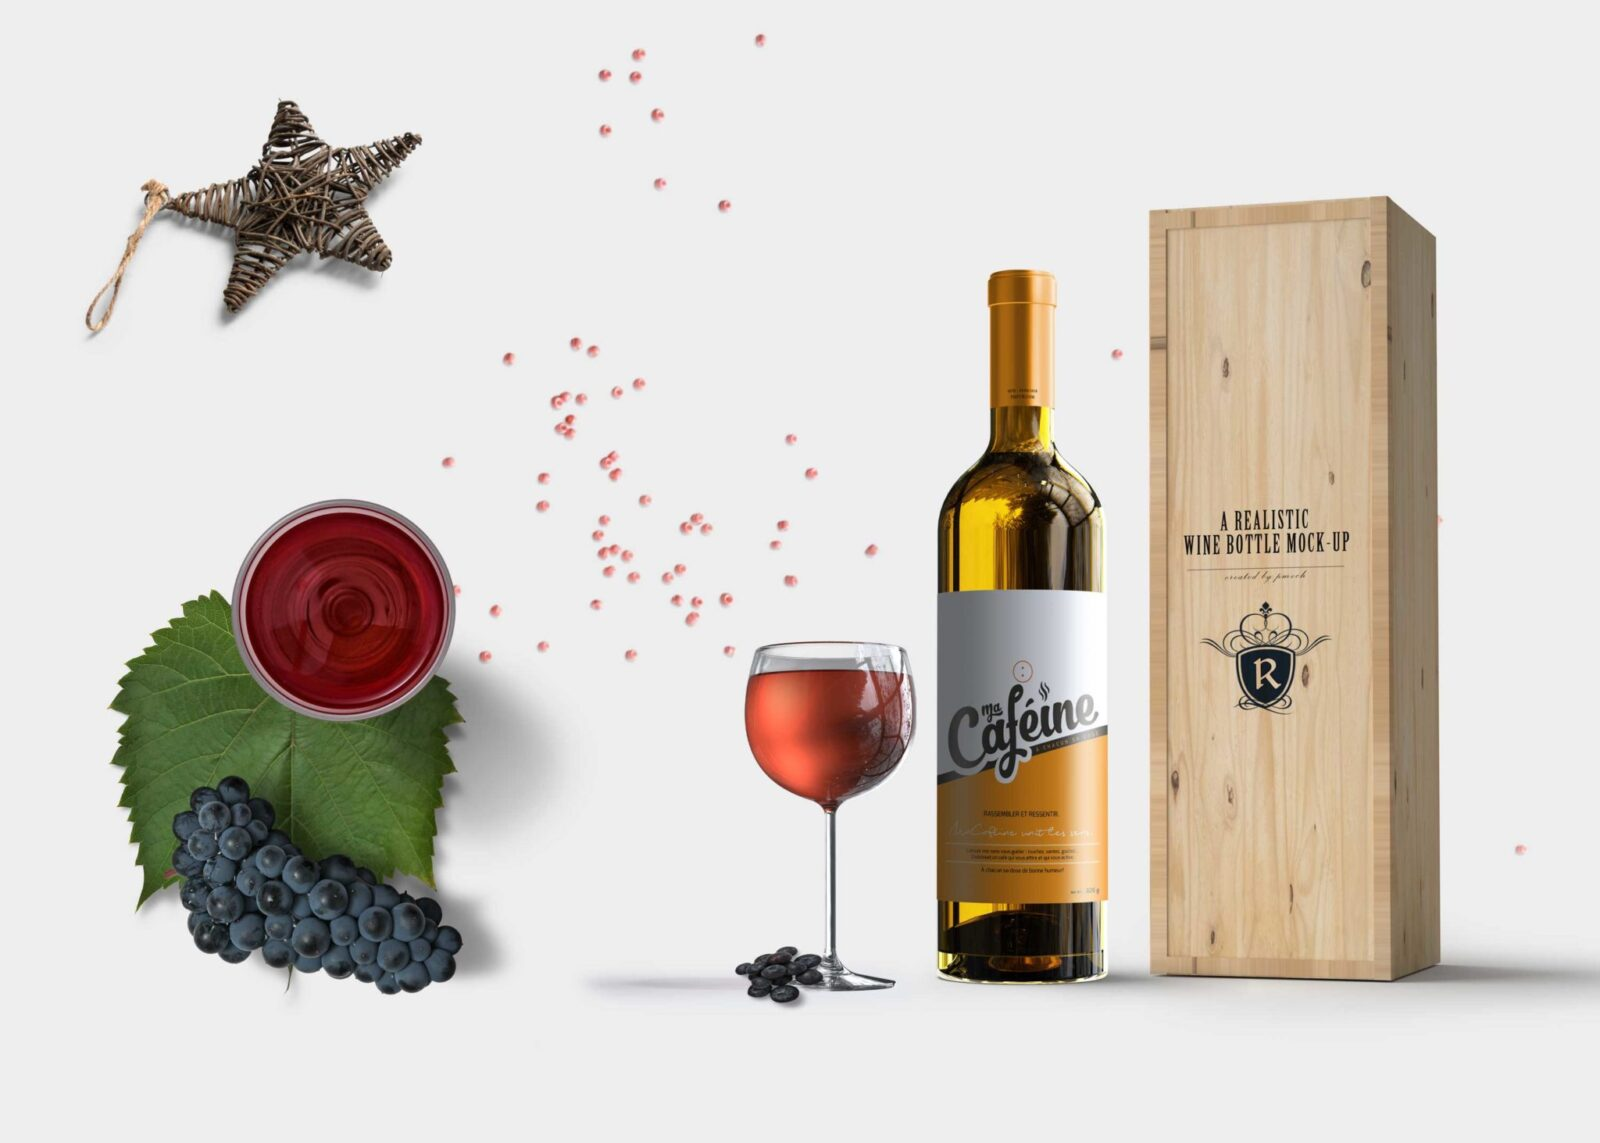 Cafeine Wine Bottle Mockup